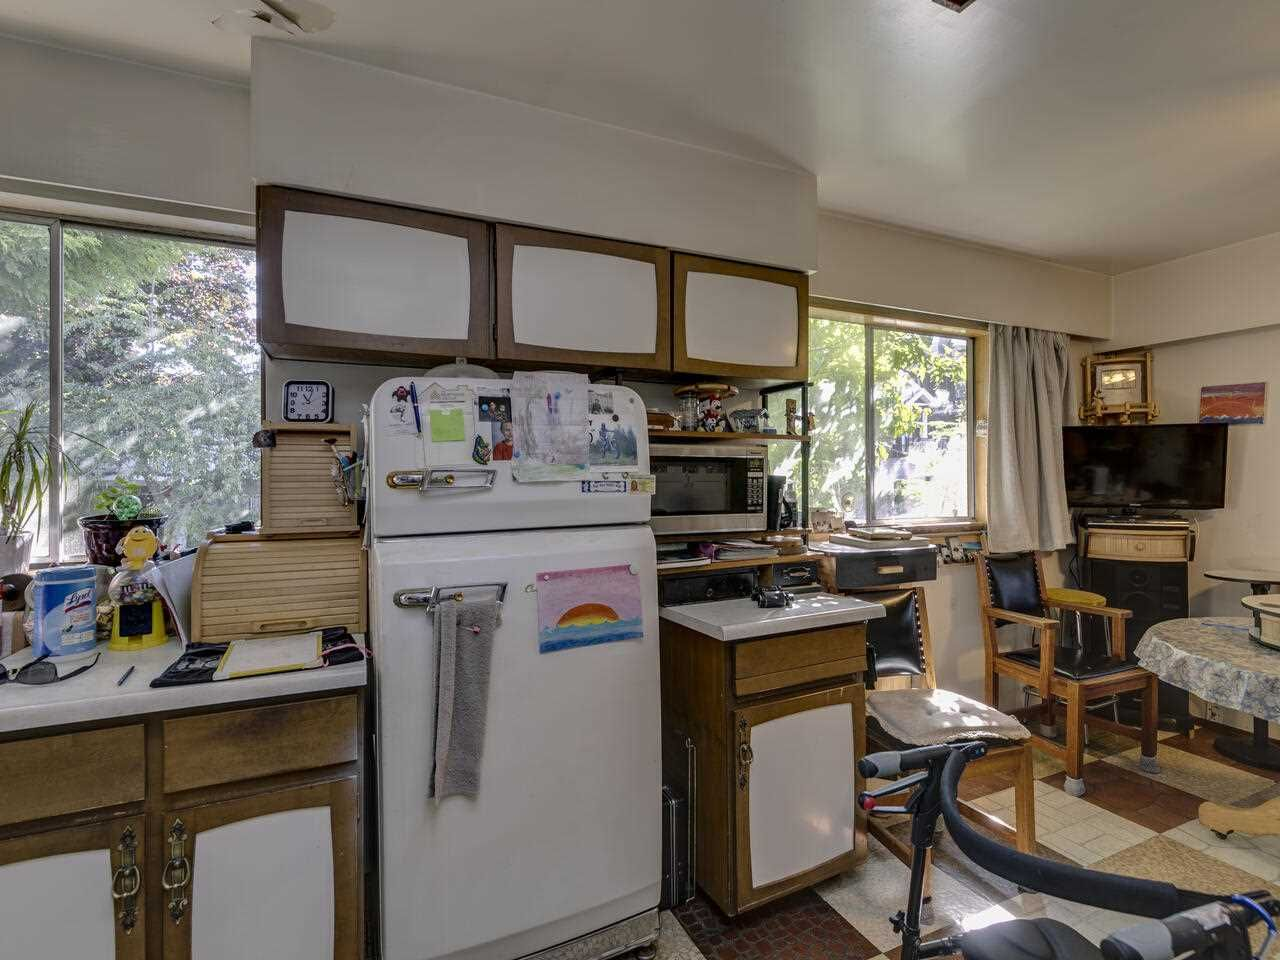 """Photo 23: Photos: 2796 E 4TH Avenue in Vancouver: Renfrew VE House for sale in """"Renfrew Heights"""" (Vancouver East)  : MLS®# R2496647"""